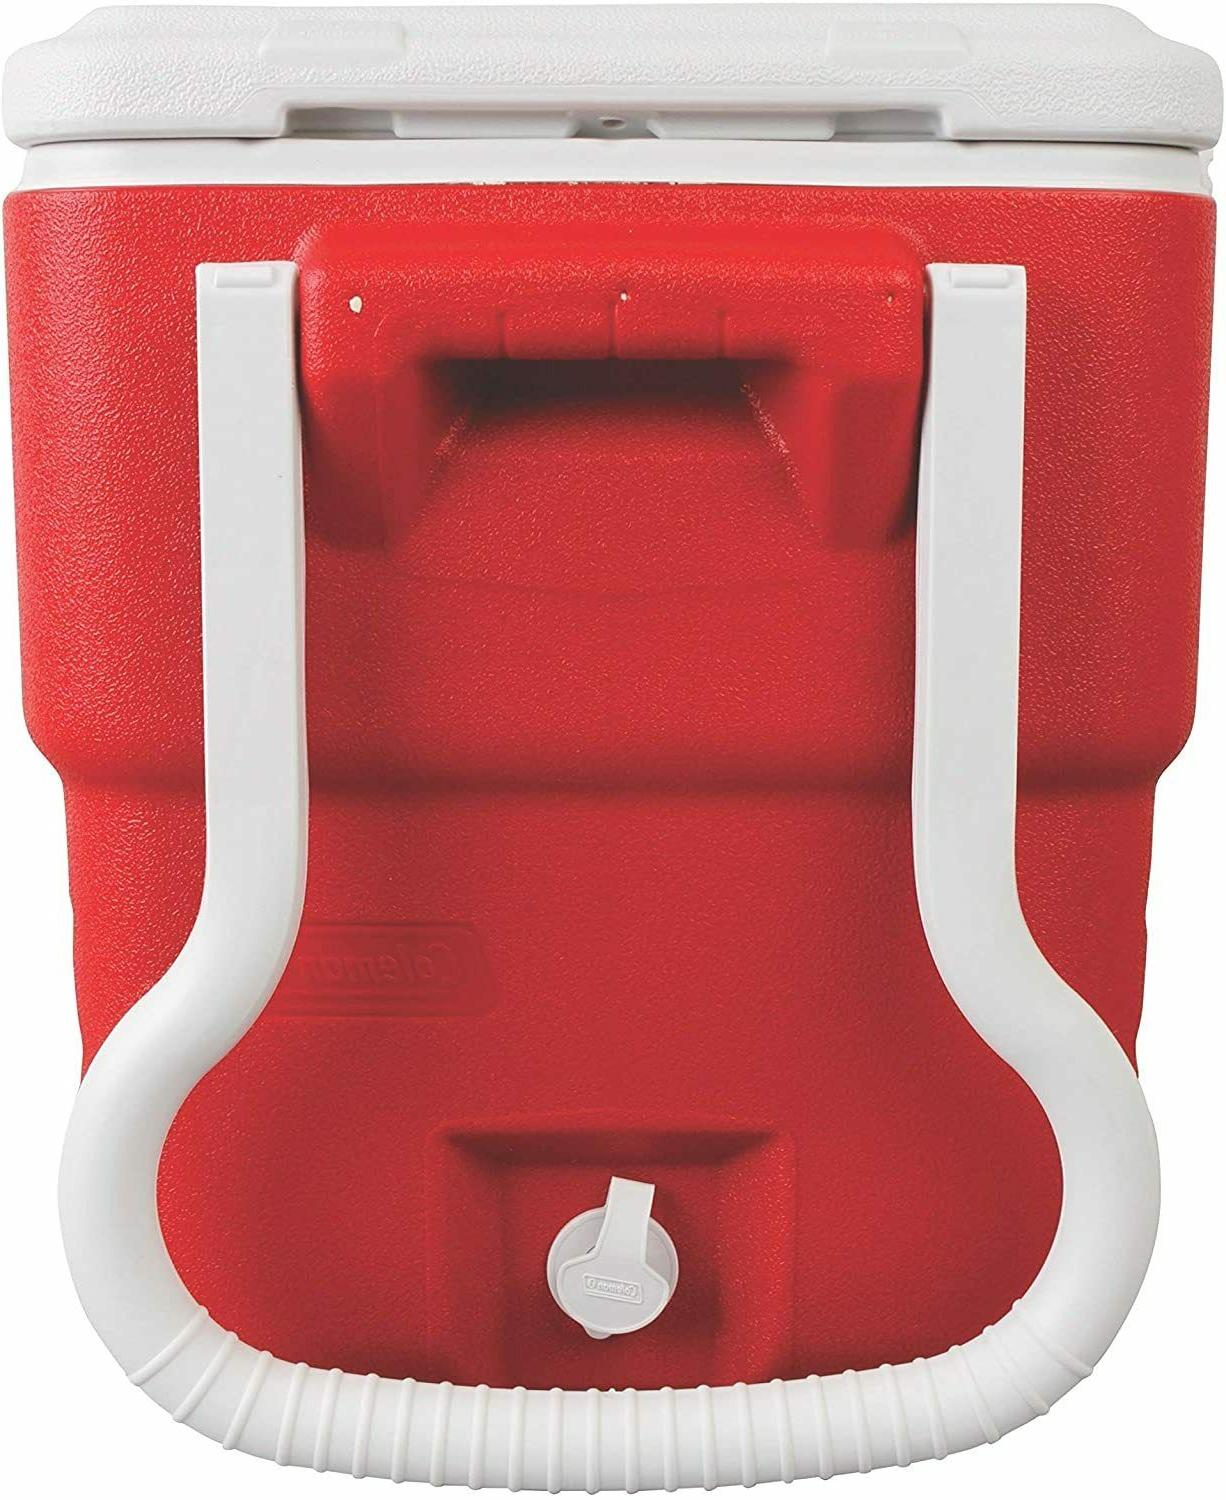 40 Quart Wheeled Cooler Extreme Outdoor Picnic